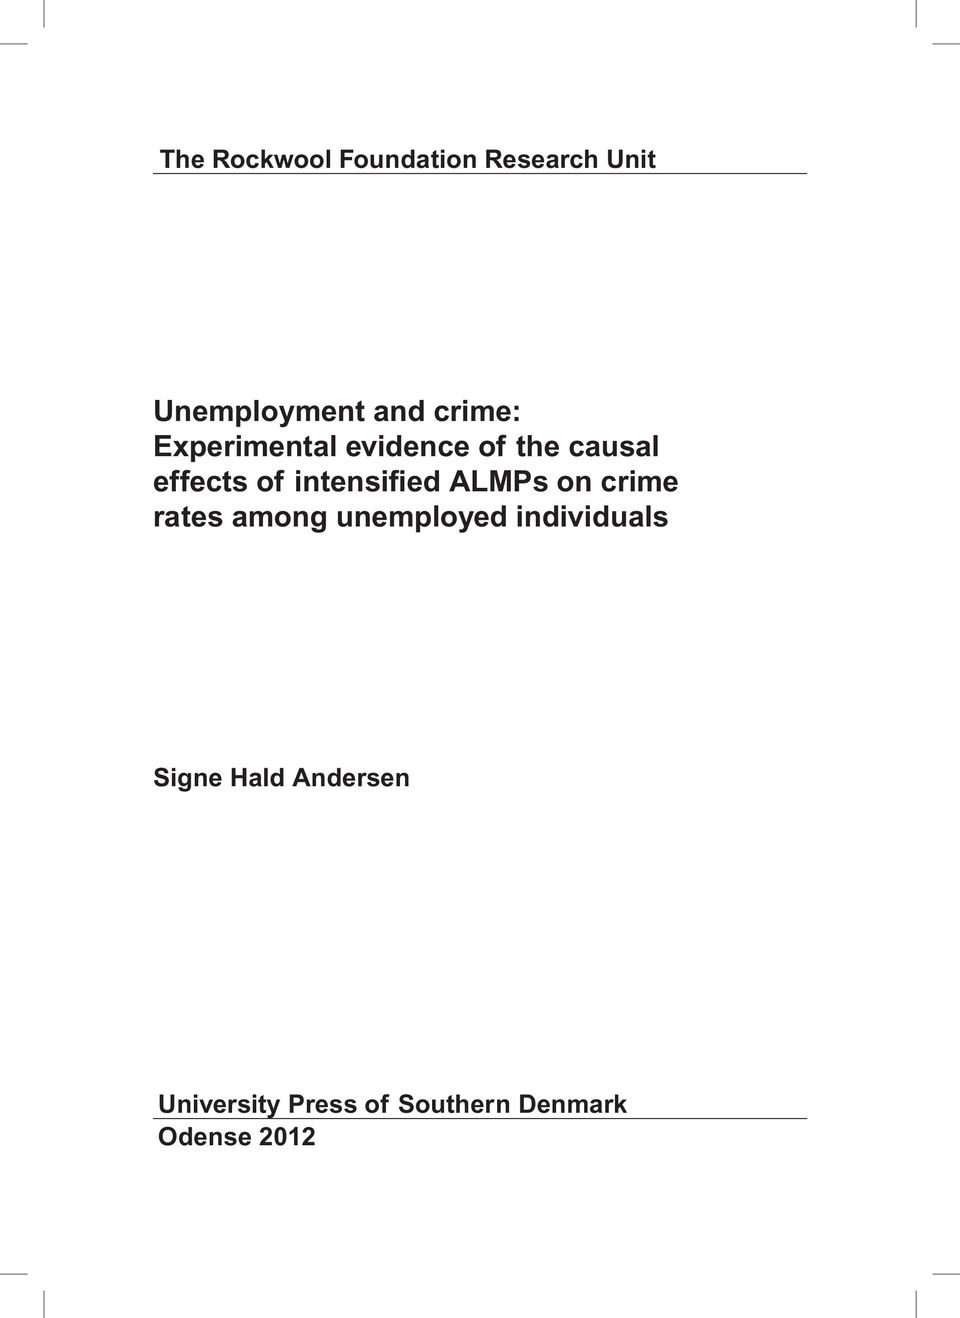 intensified ALMPs on crime rates among unemployed